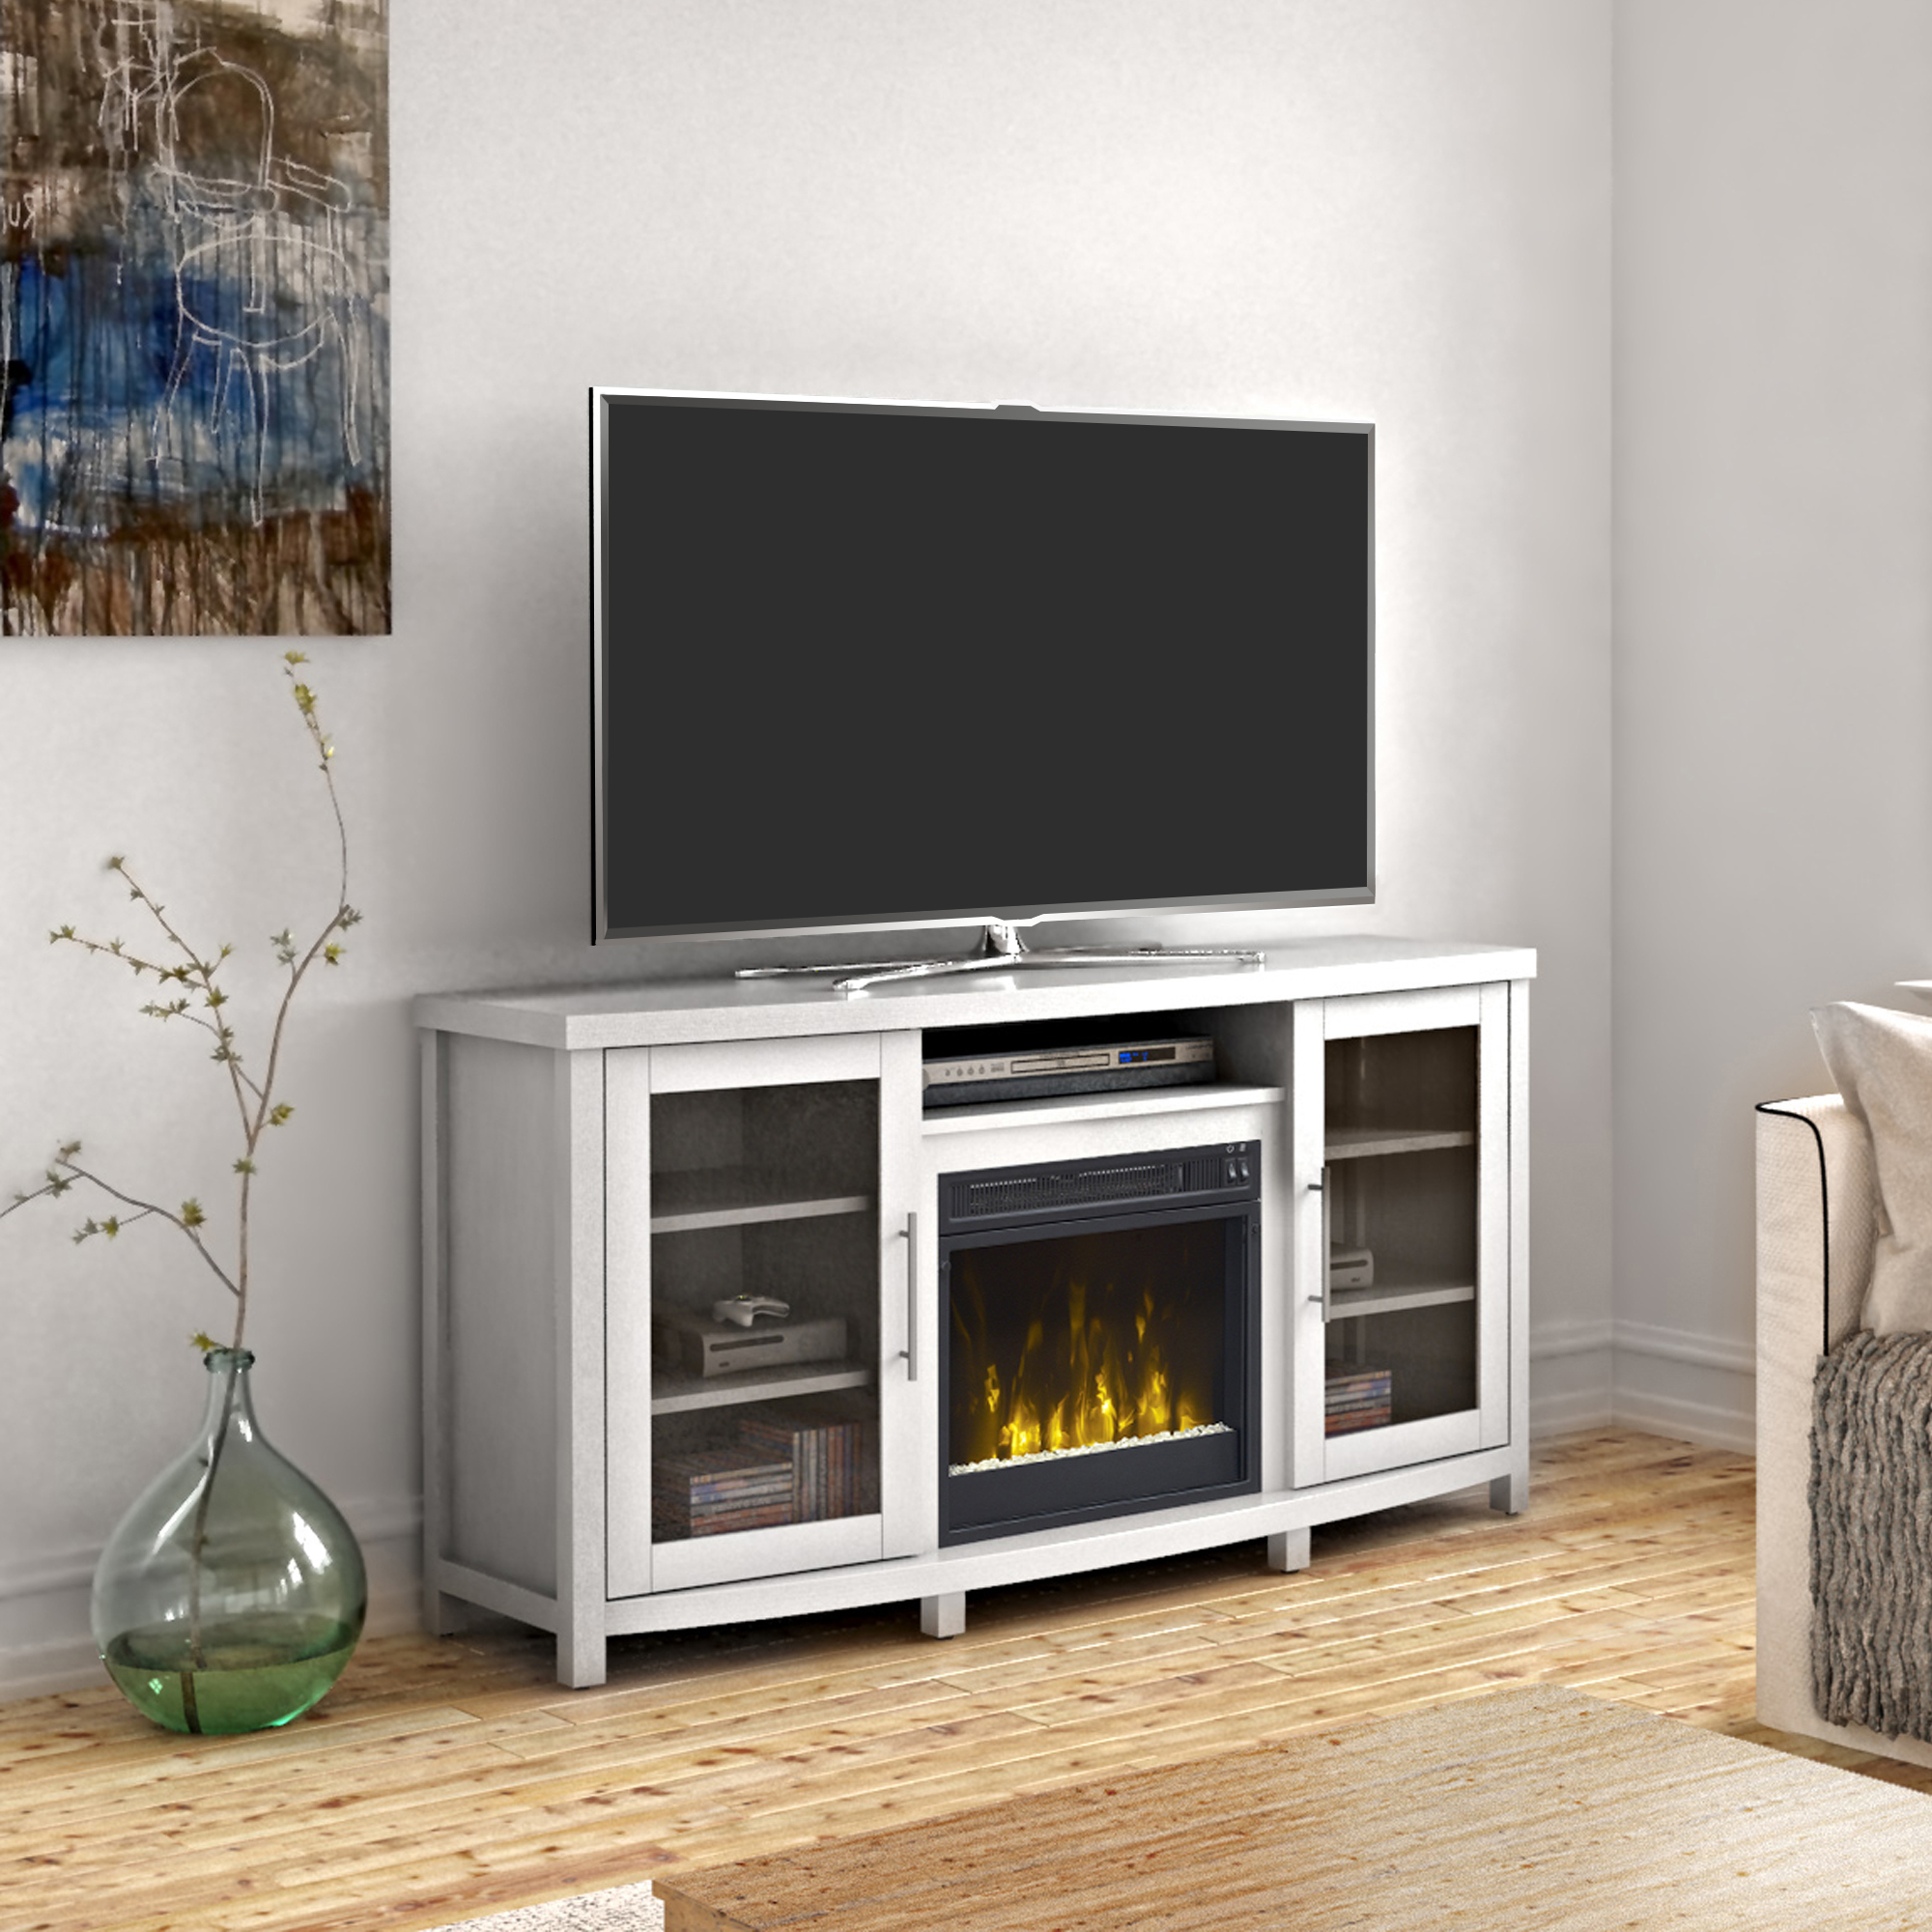 """Lorraine Tv Stands For Tvs Up To 60"""" Pertaining To 2018 Sea Meadow White Tv Stand For Tvs Up To 60"""" With Electric (View 10 of 25)"""